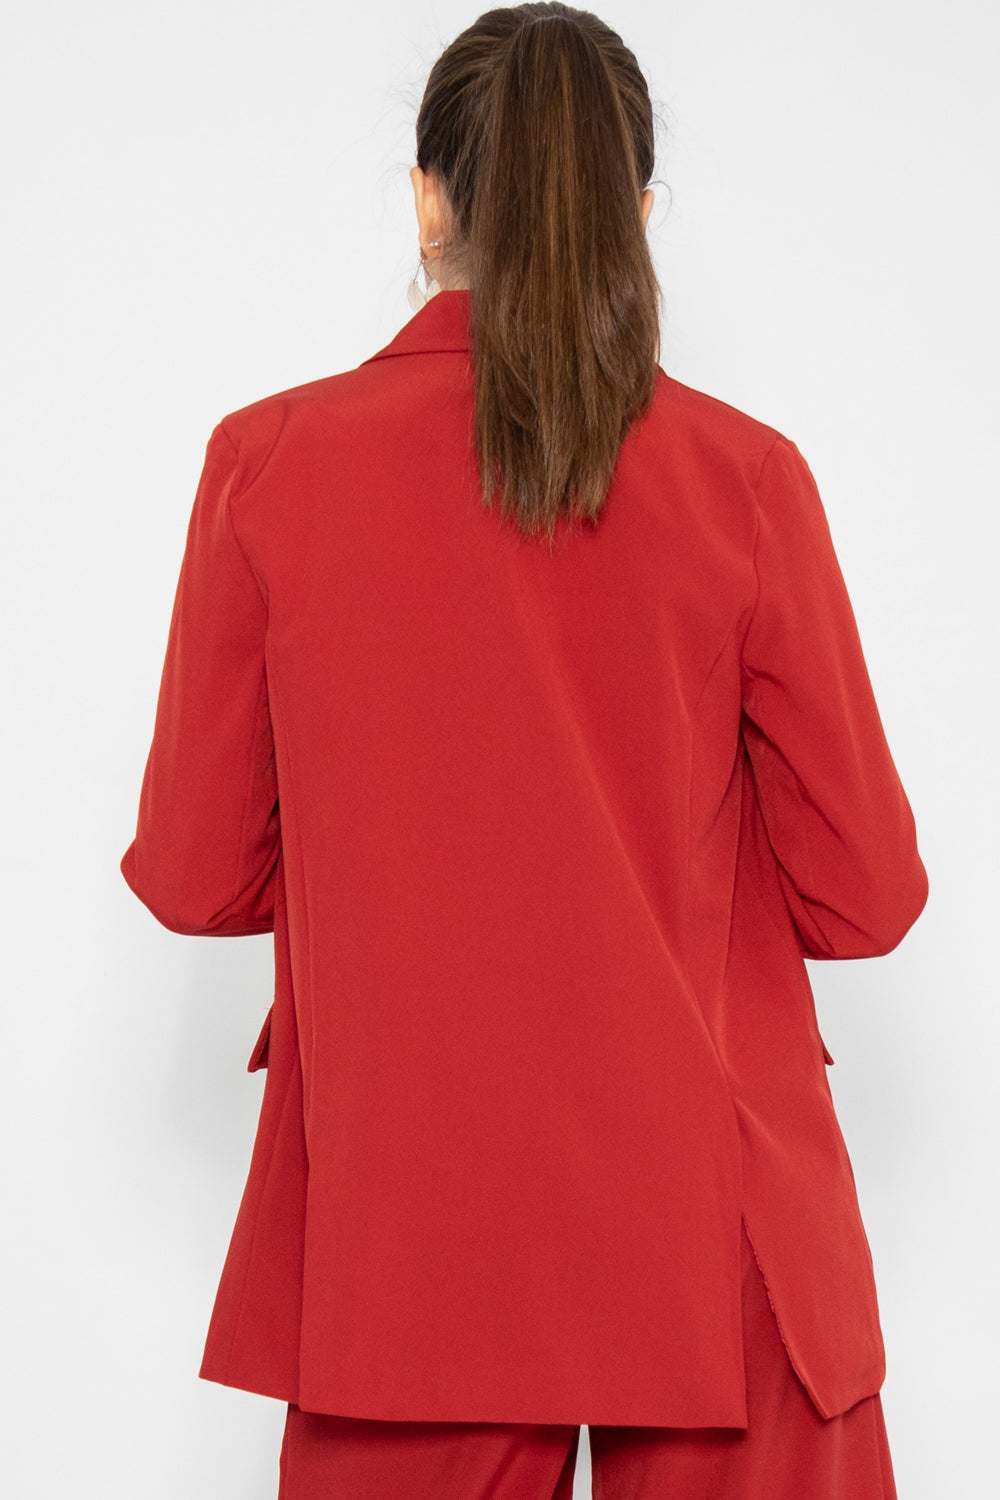 Parker Oversized Blazer in Red - Three One Duo